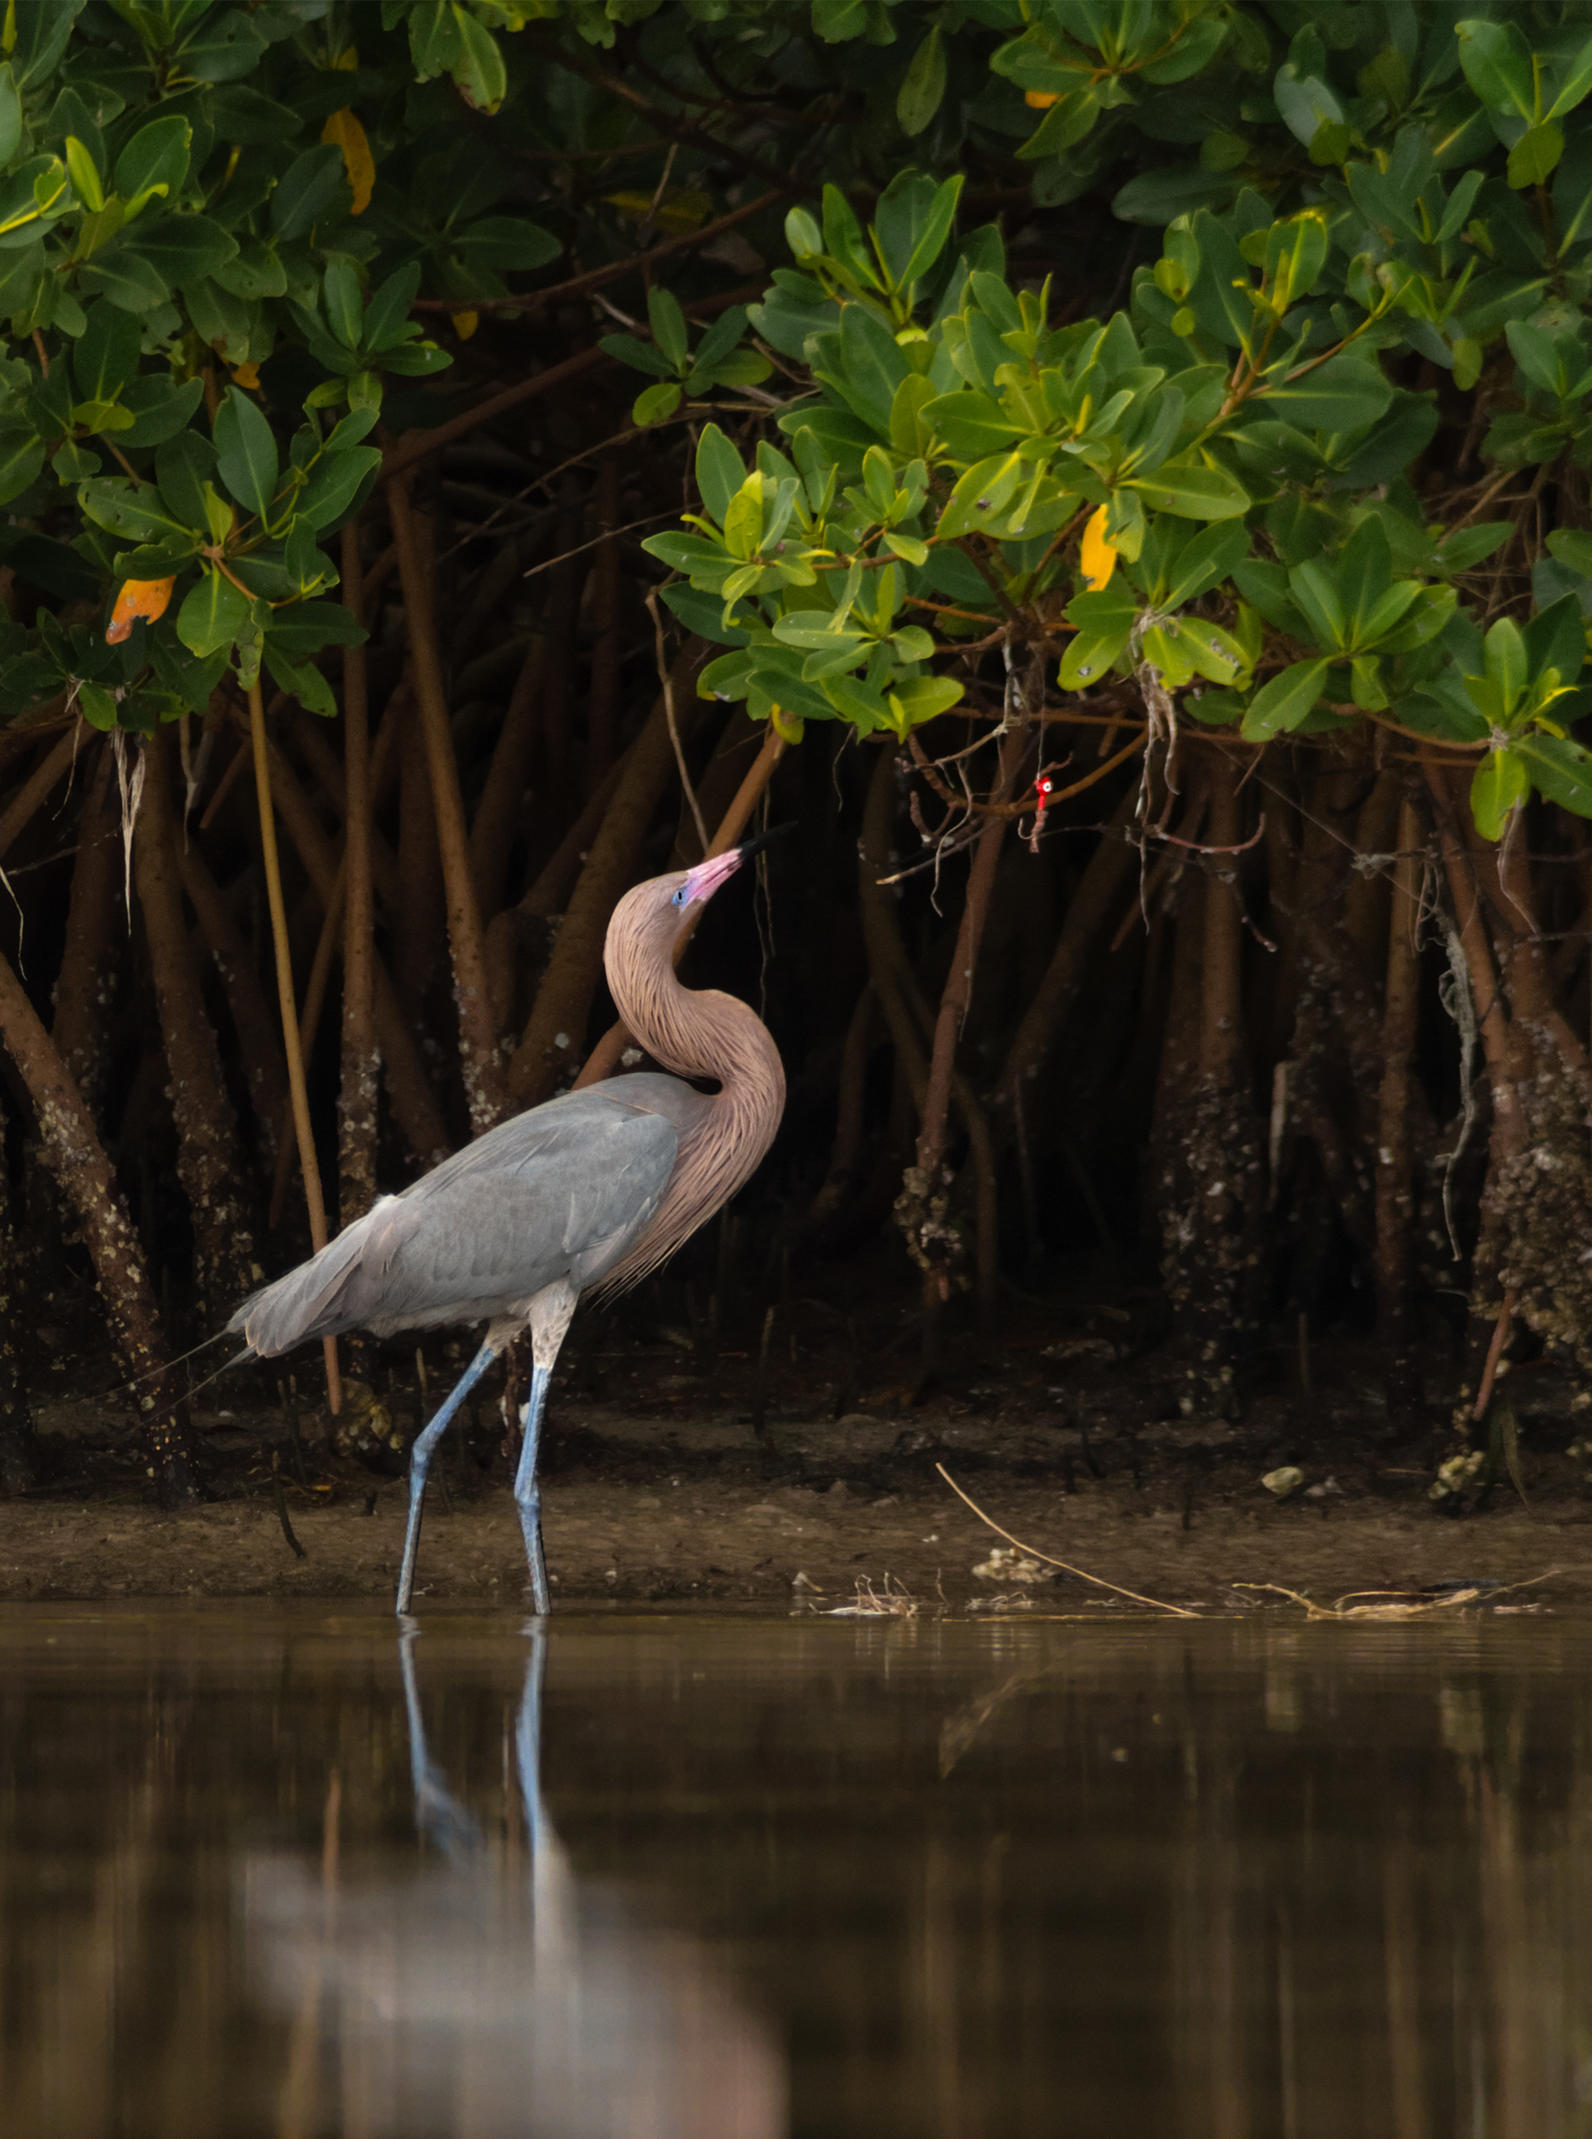 Reddish Egret in the Everglades.